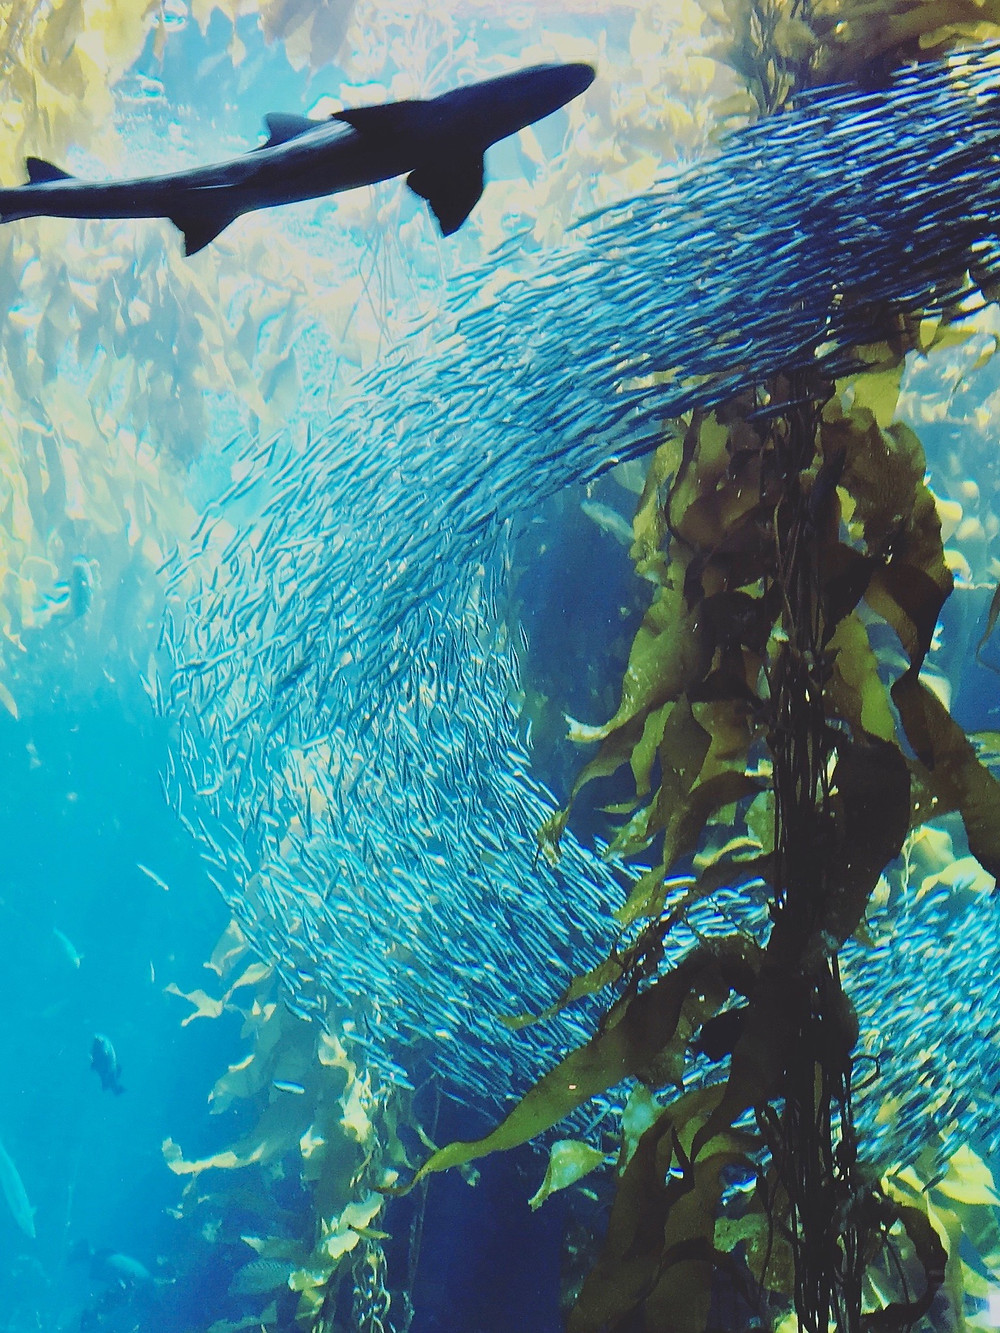 A shark swimming by a school of small fish in a kelp-filled tank in the Monterey Bay Aquarium